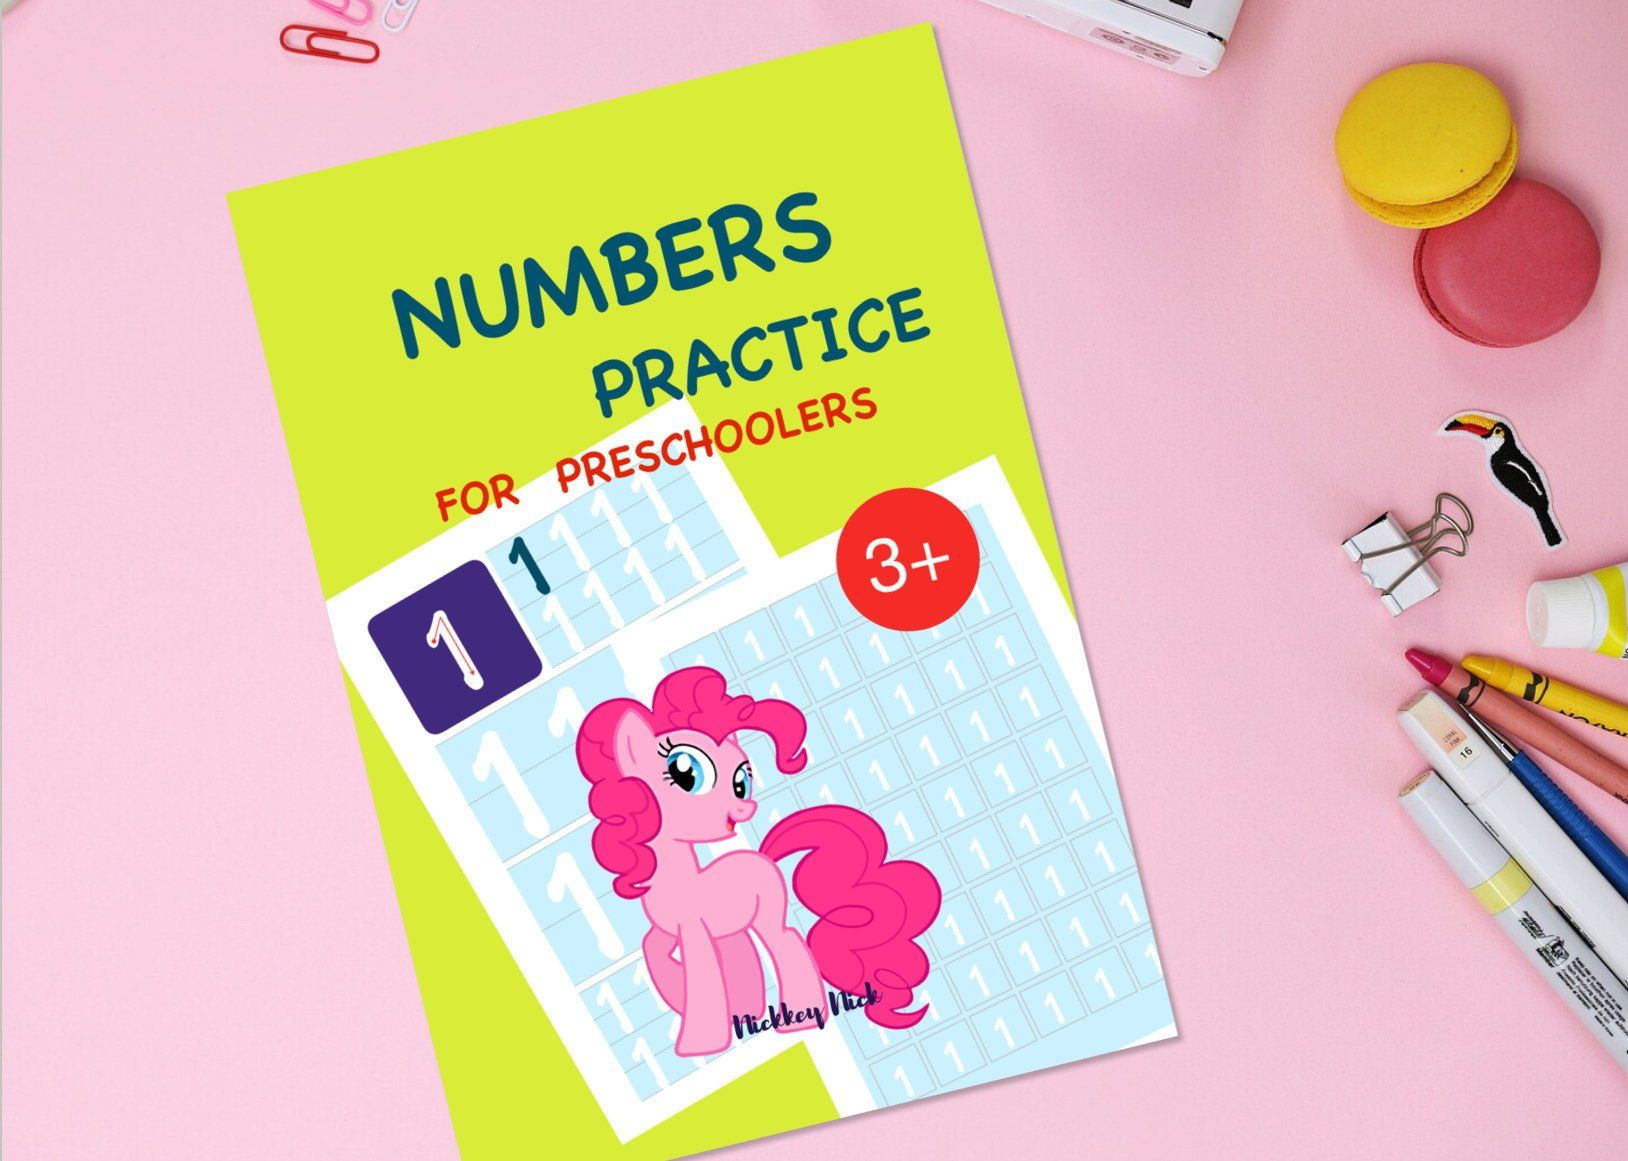 Numbers Practice Worksheets For Preschoolers And Kids